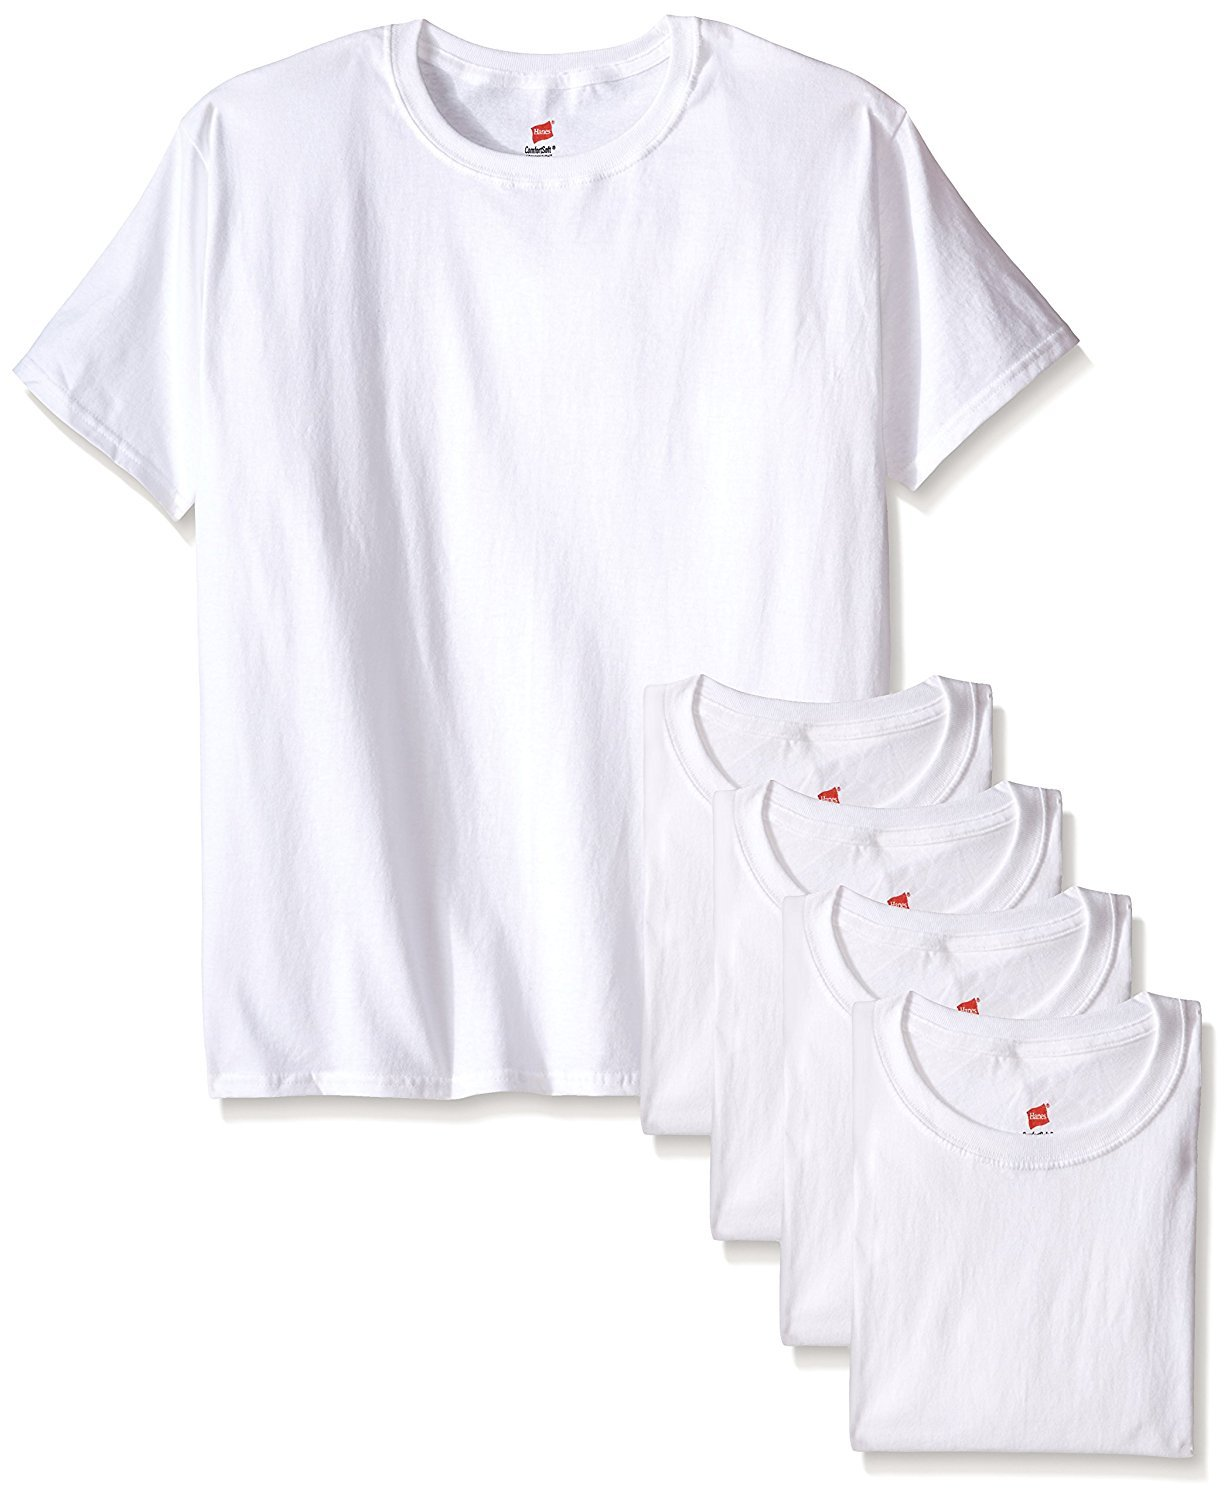 Hanes Men's ComfortSoft T-Shirt (Pack Of 6) (White, XX-Large Tall)